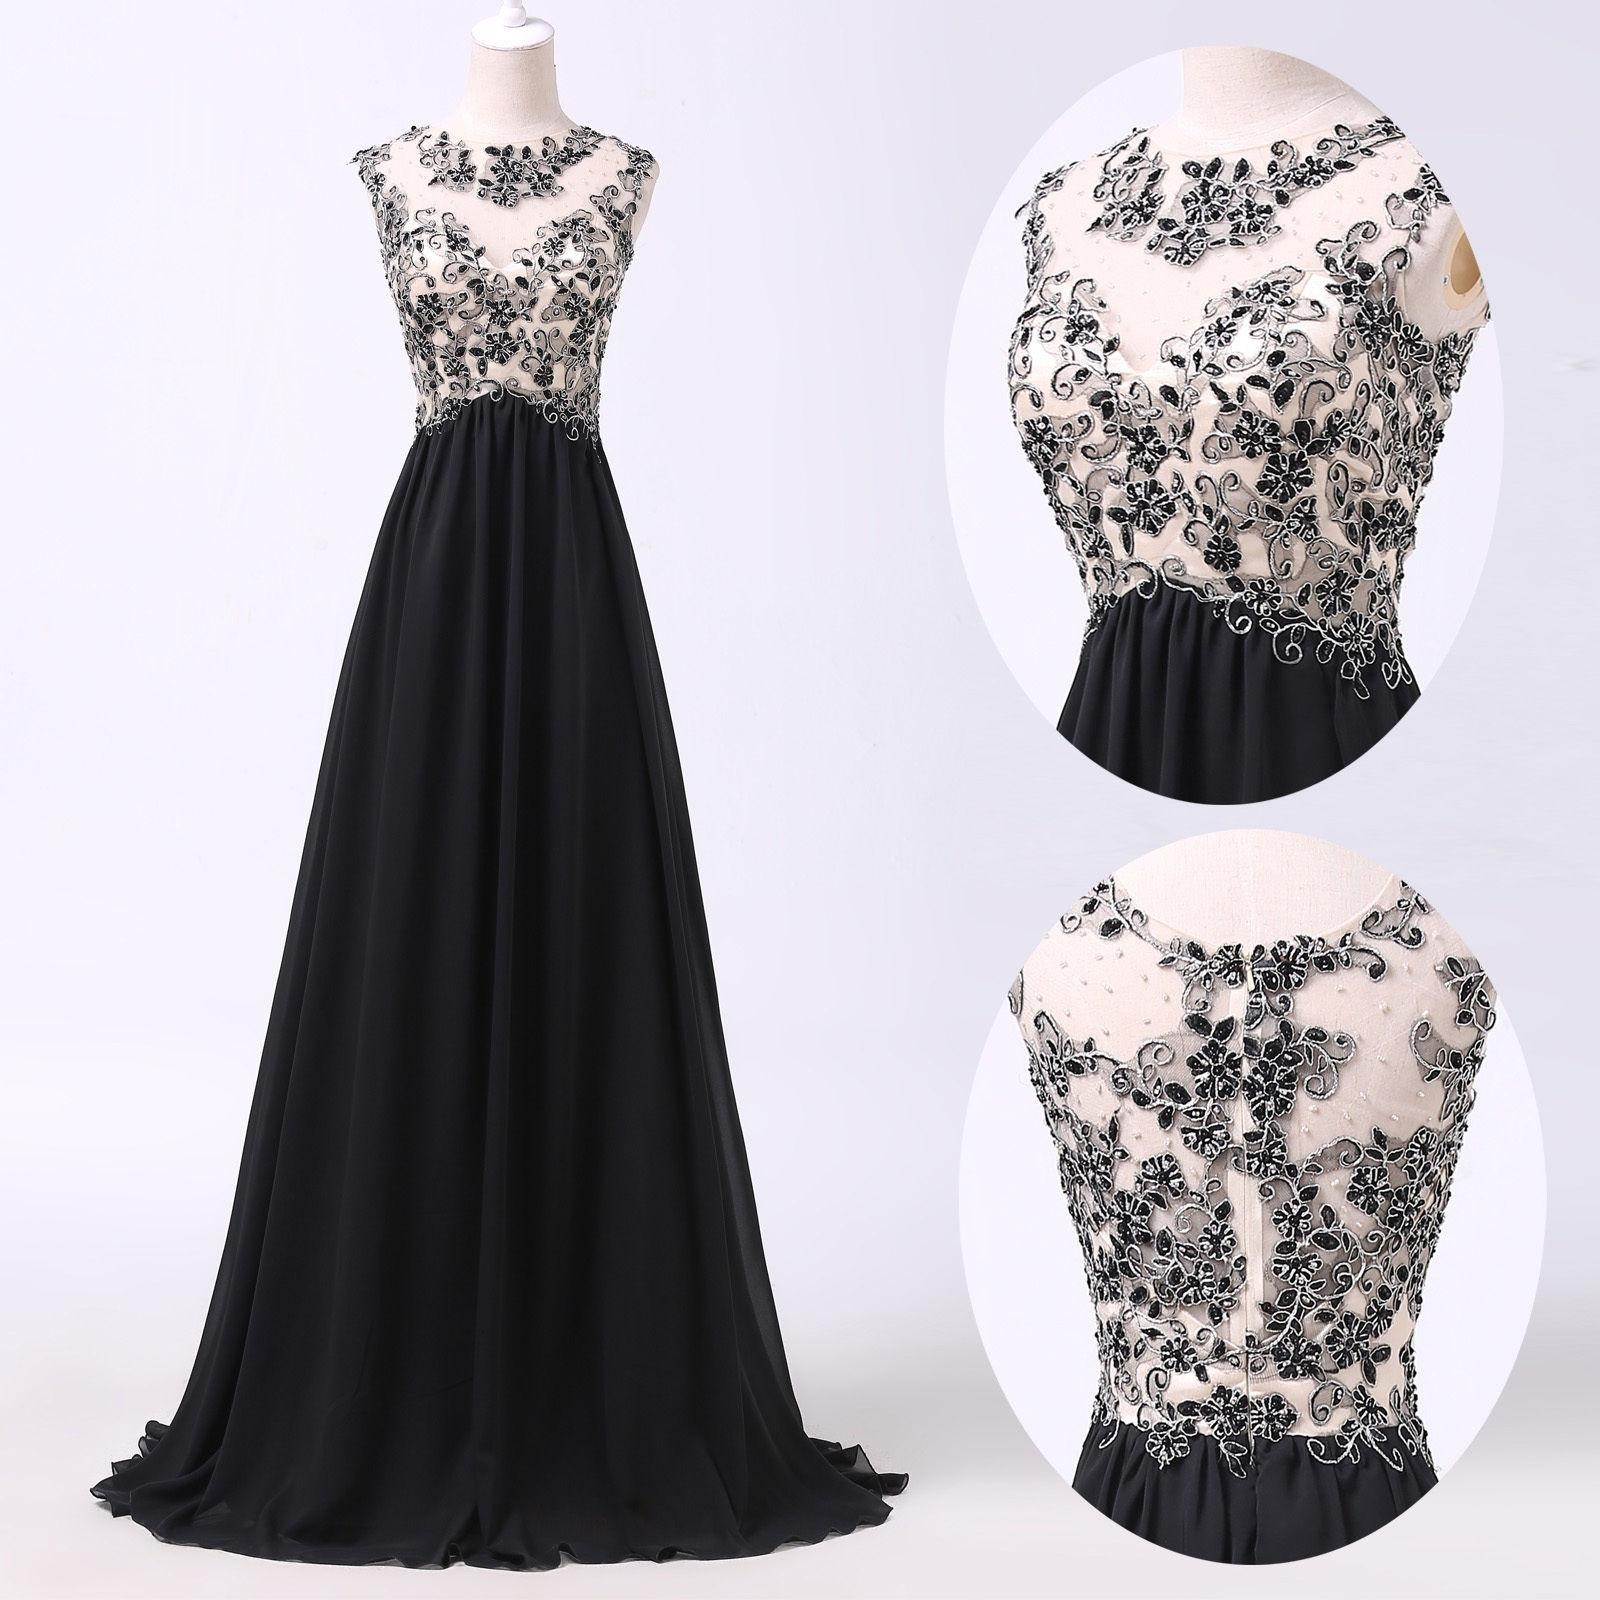 Luxurious A-Line Scoop Floor Length Chiffon Black Evening/Prom Dress With Beading